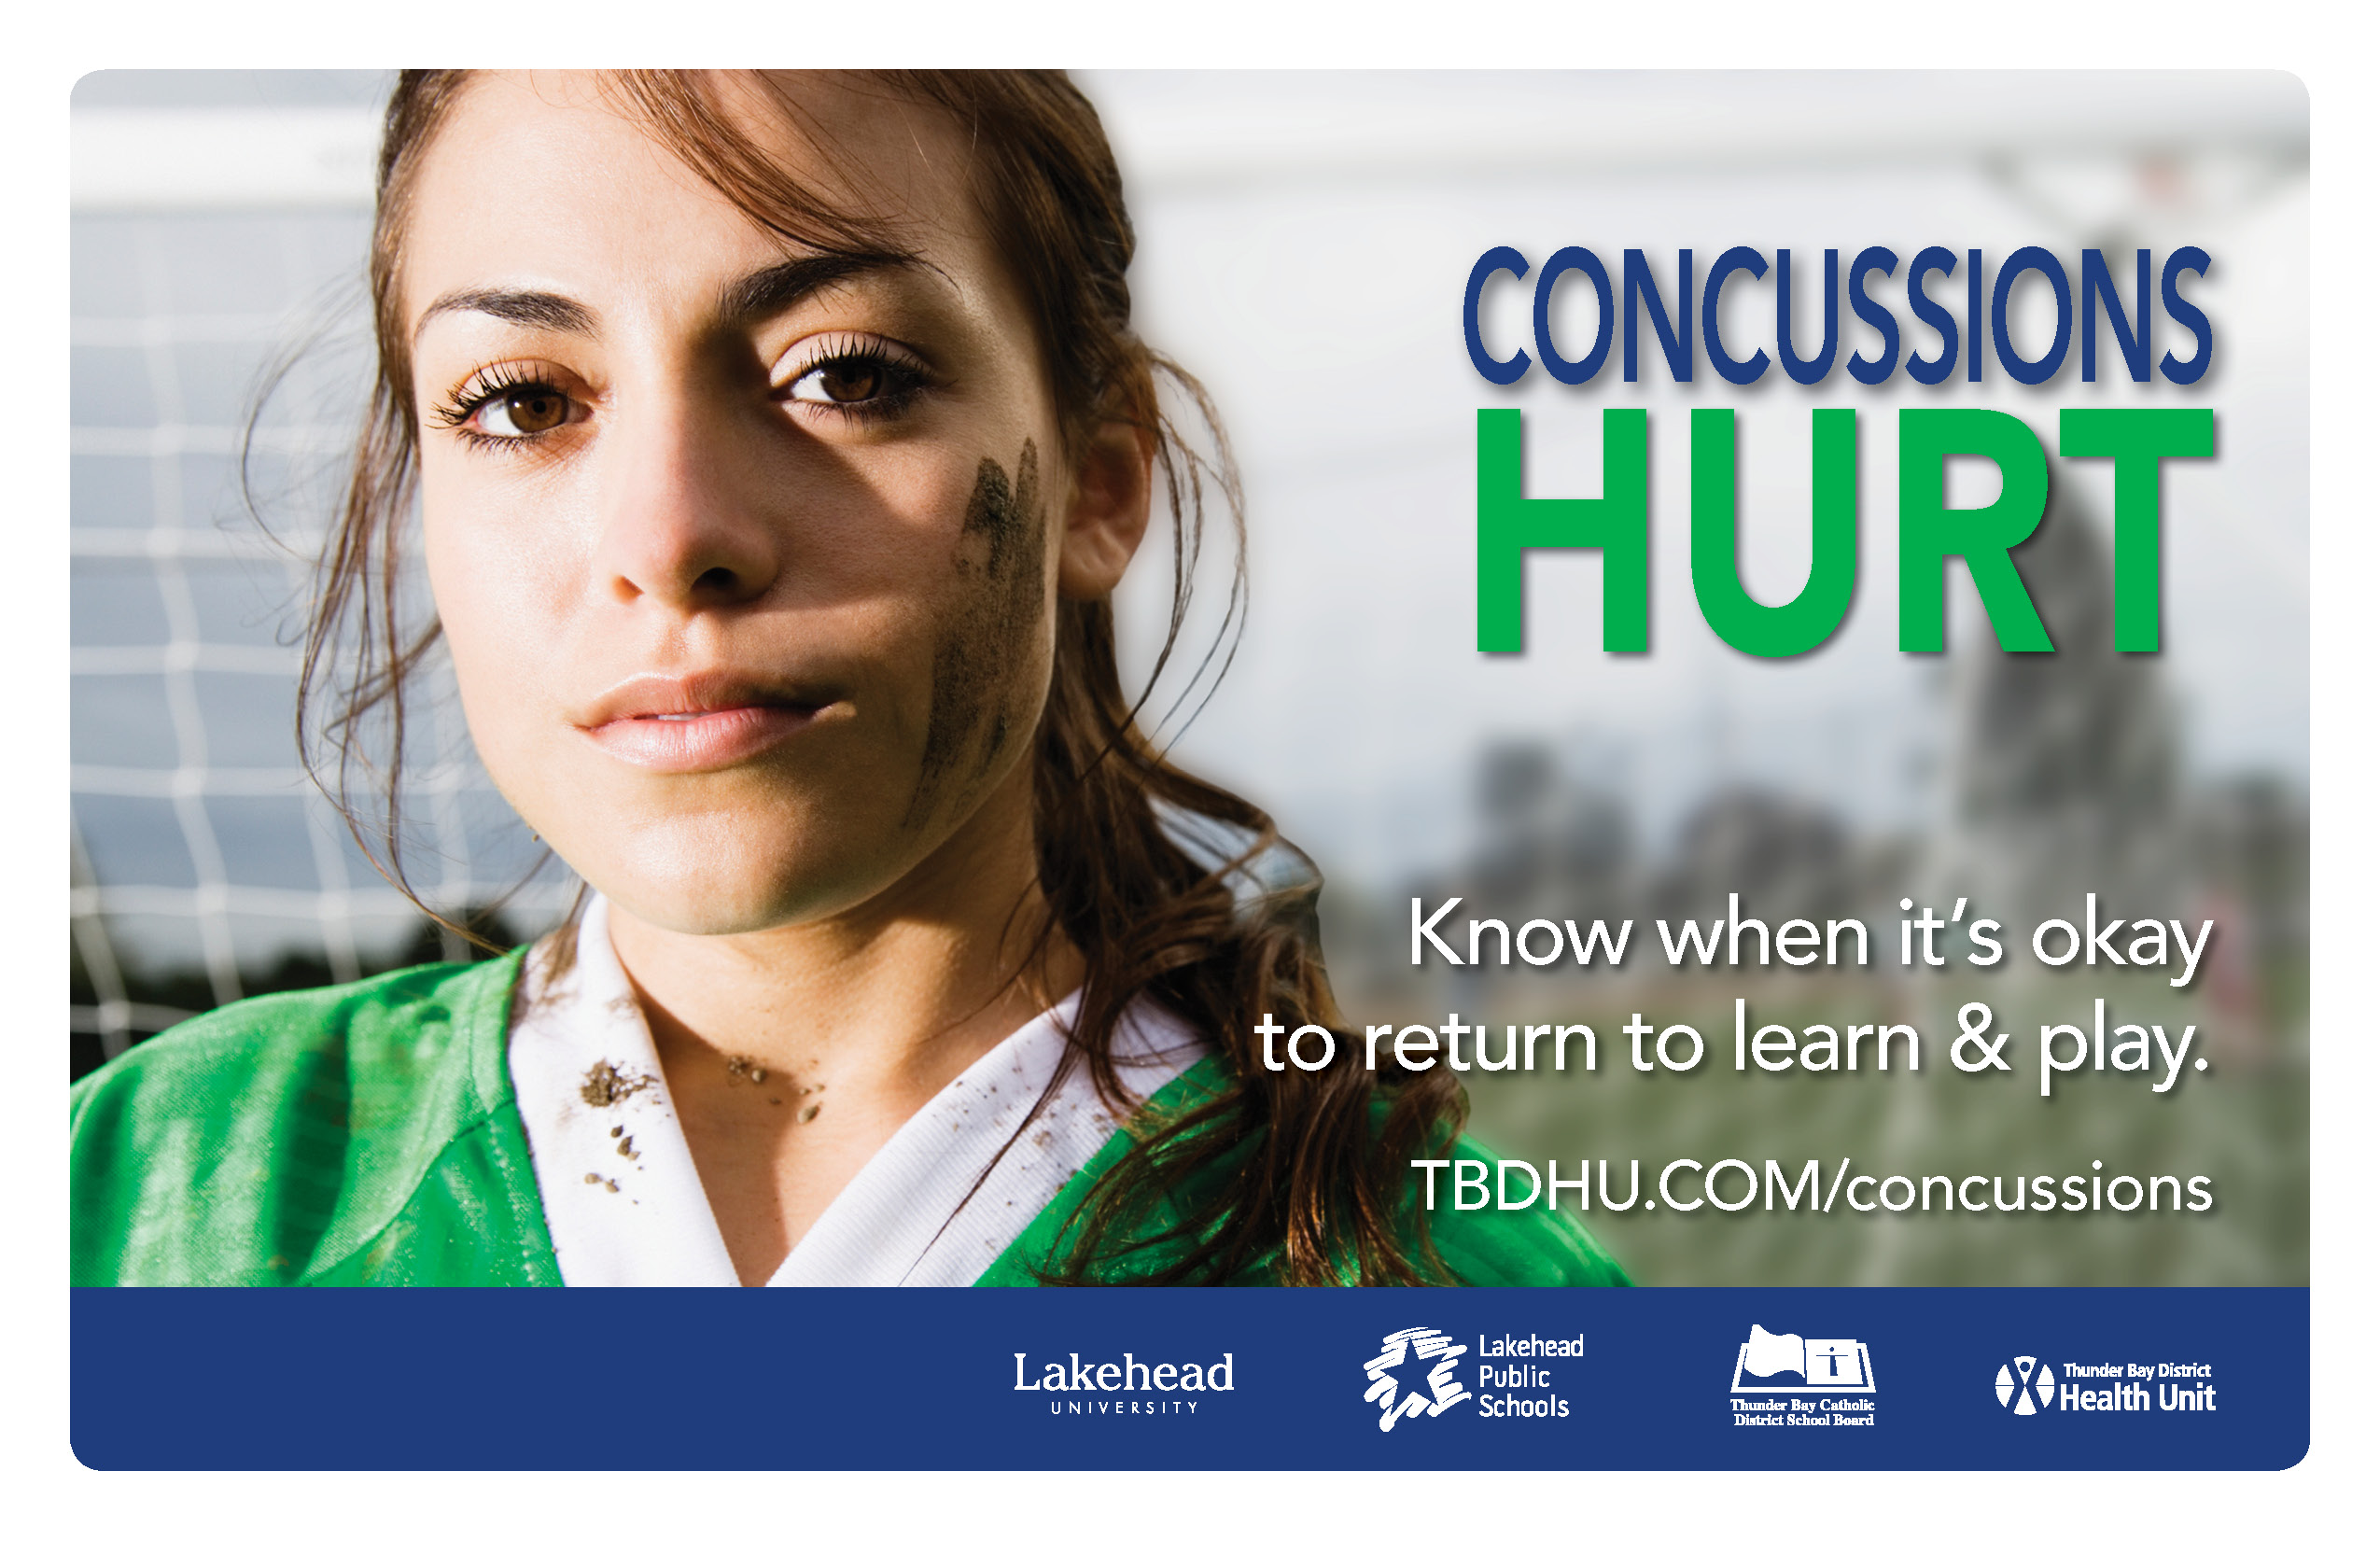 Concussions Hurt - teenage female soccer player